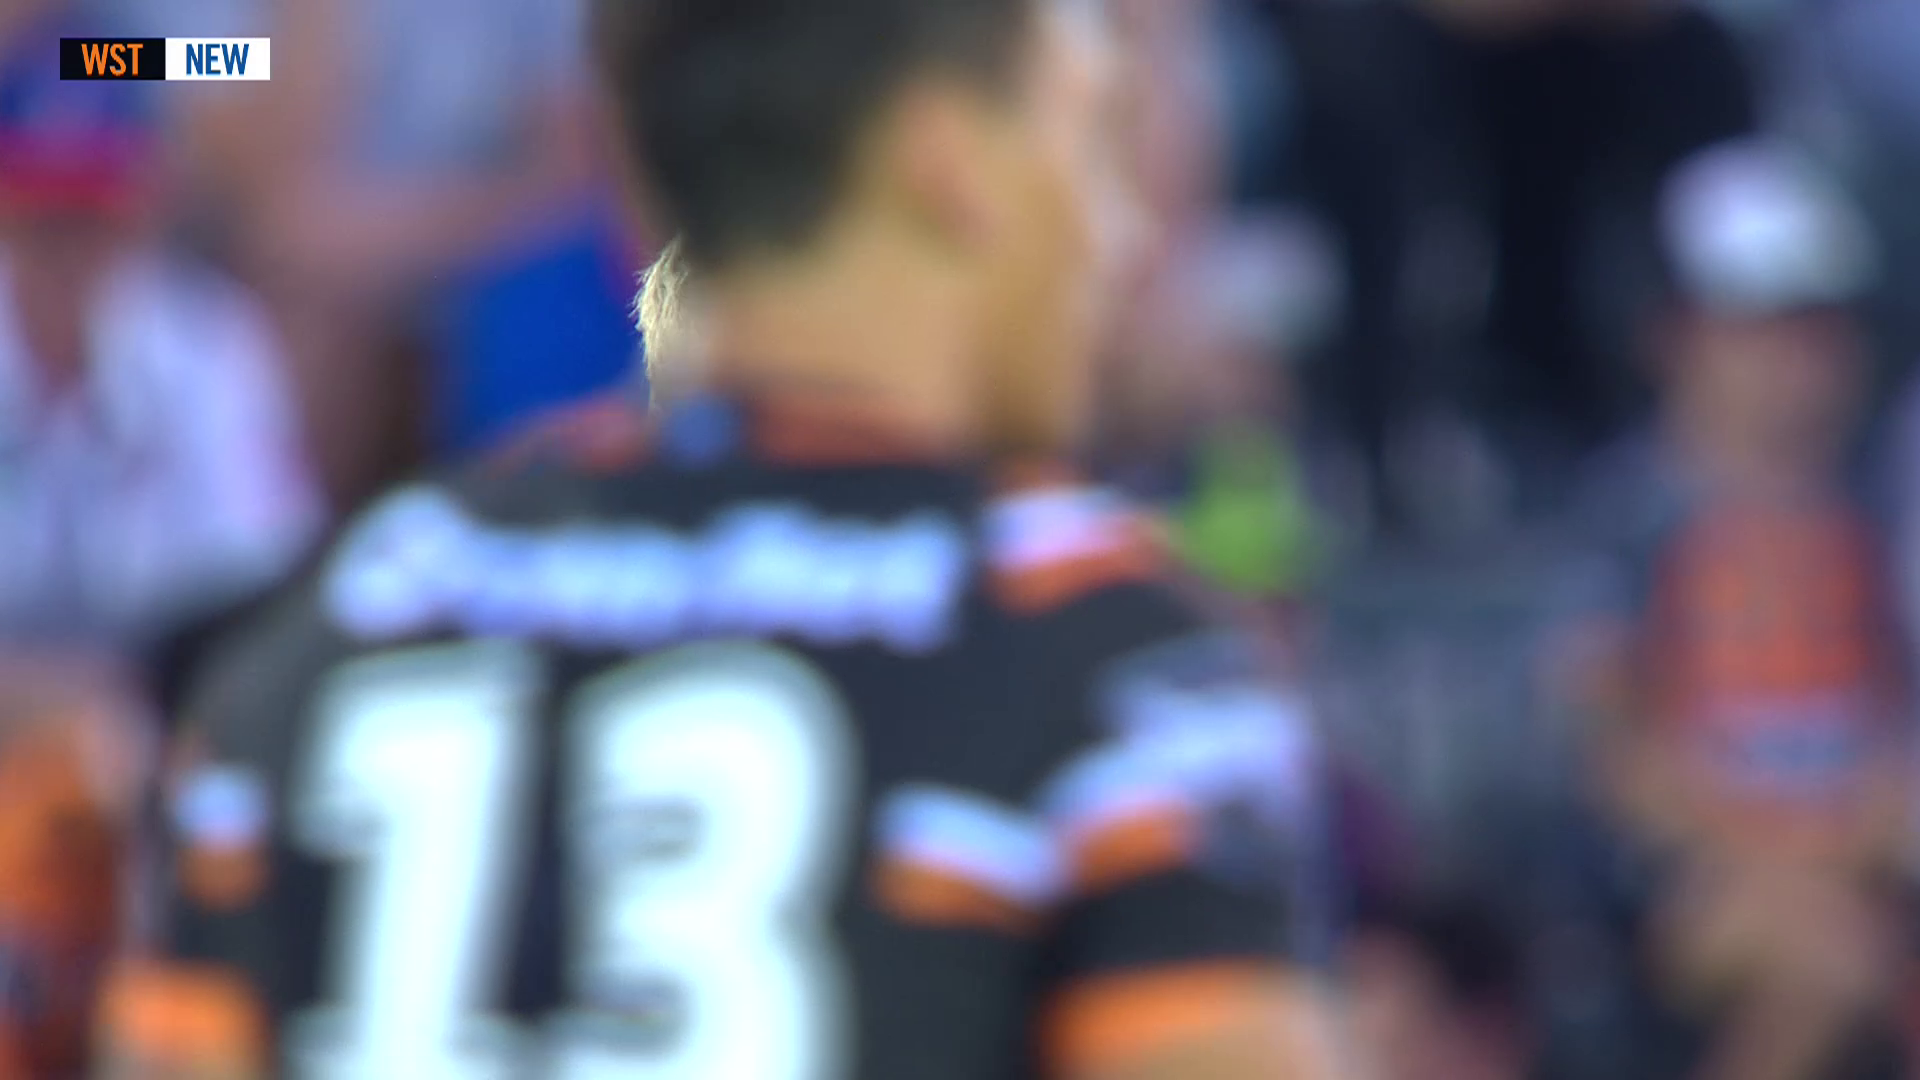 Full Match Replay: Wests Tigers v Knights - Round 7, 2018